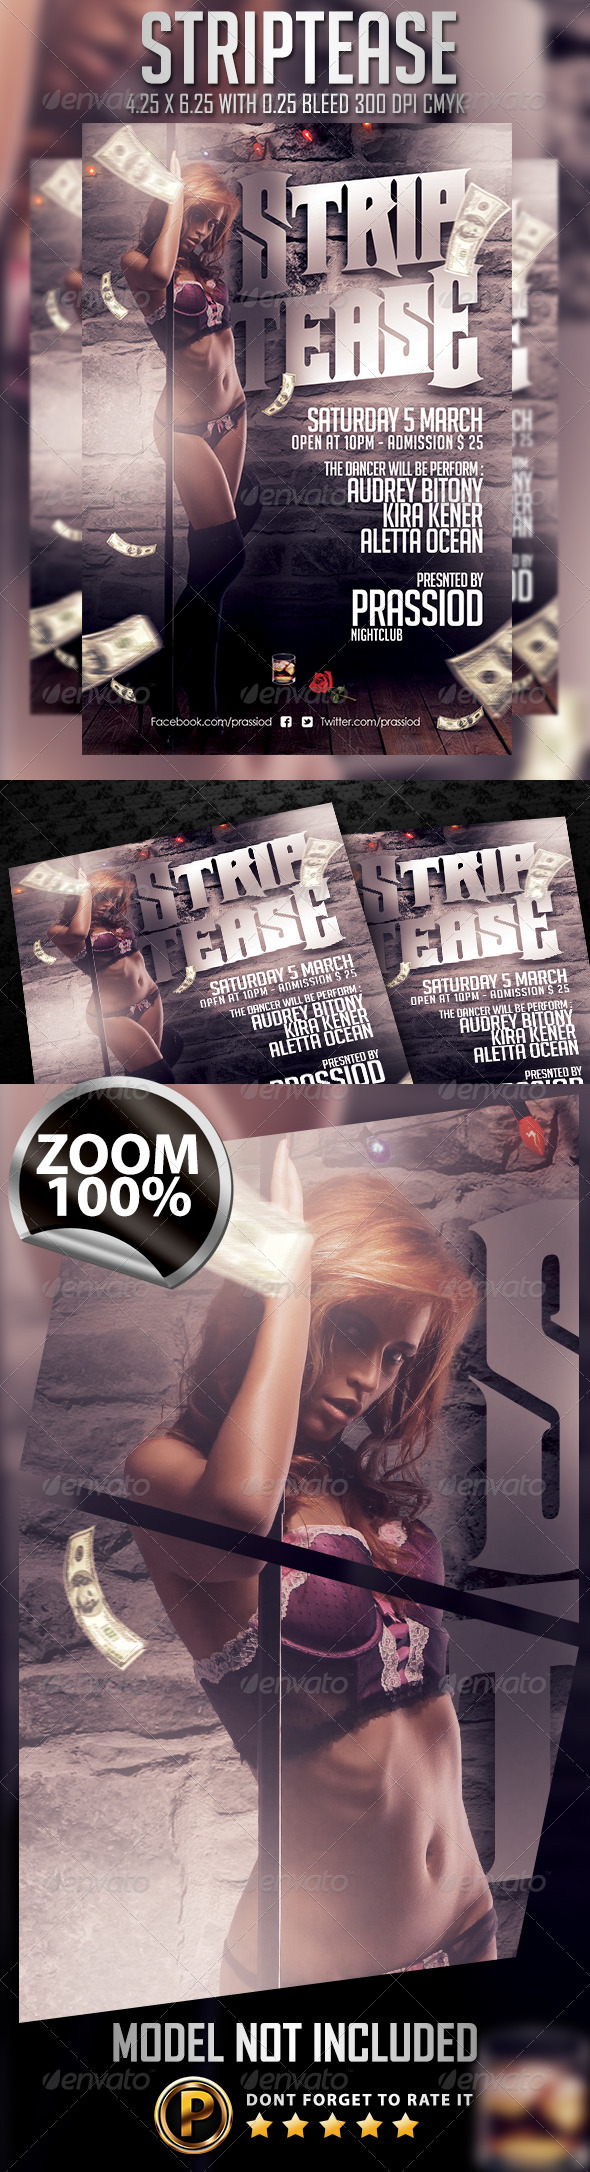 Striptease Flyer Template - Clubs & Parties Events